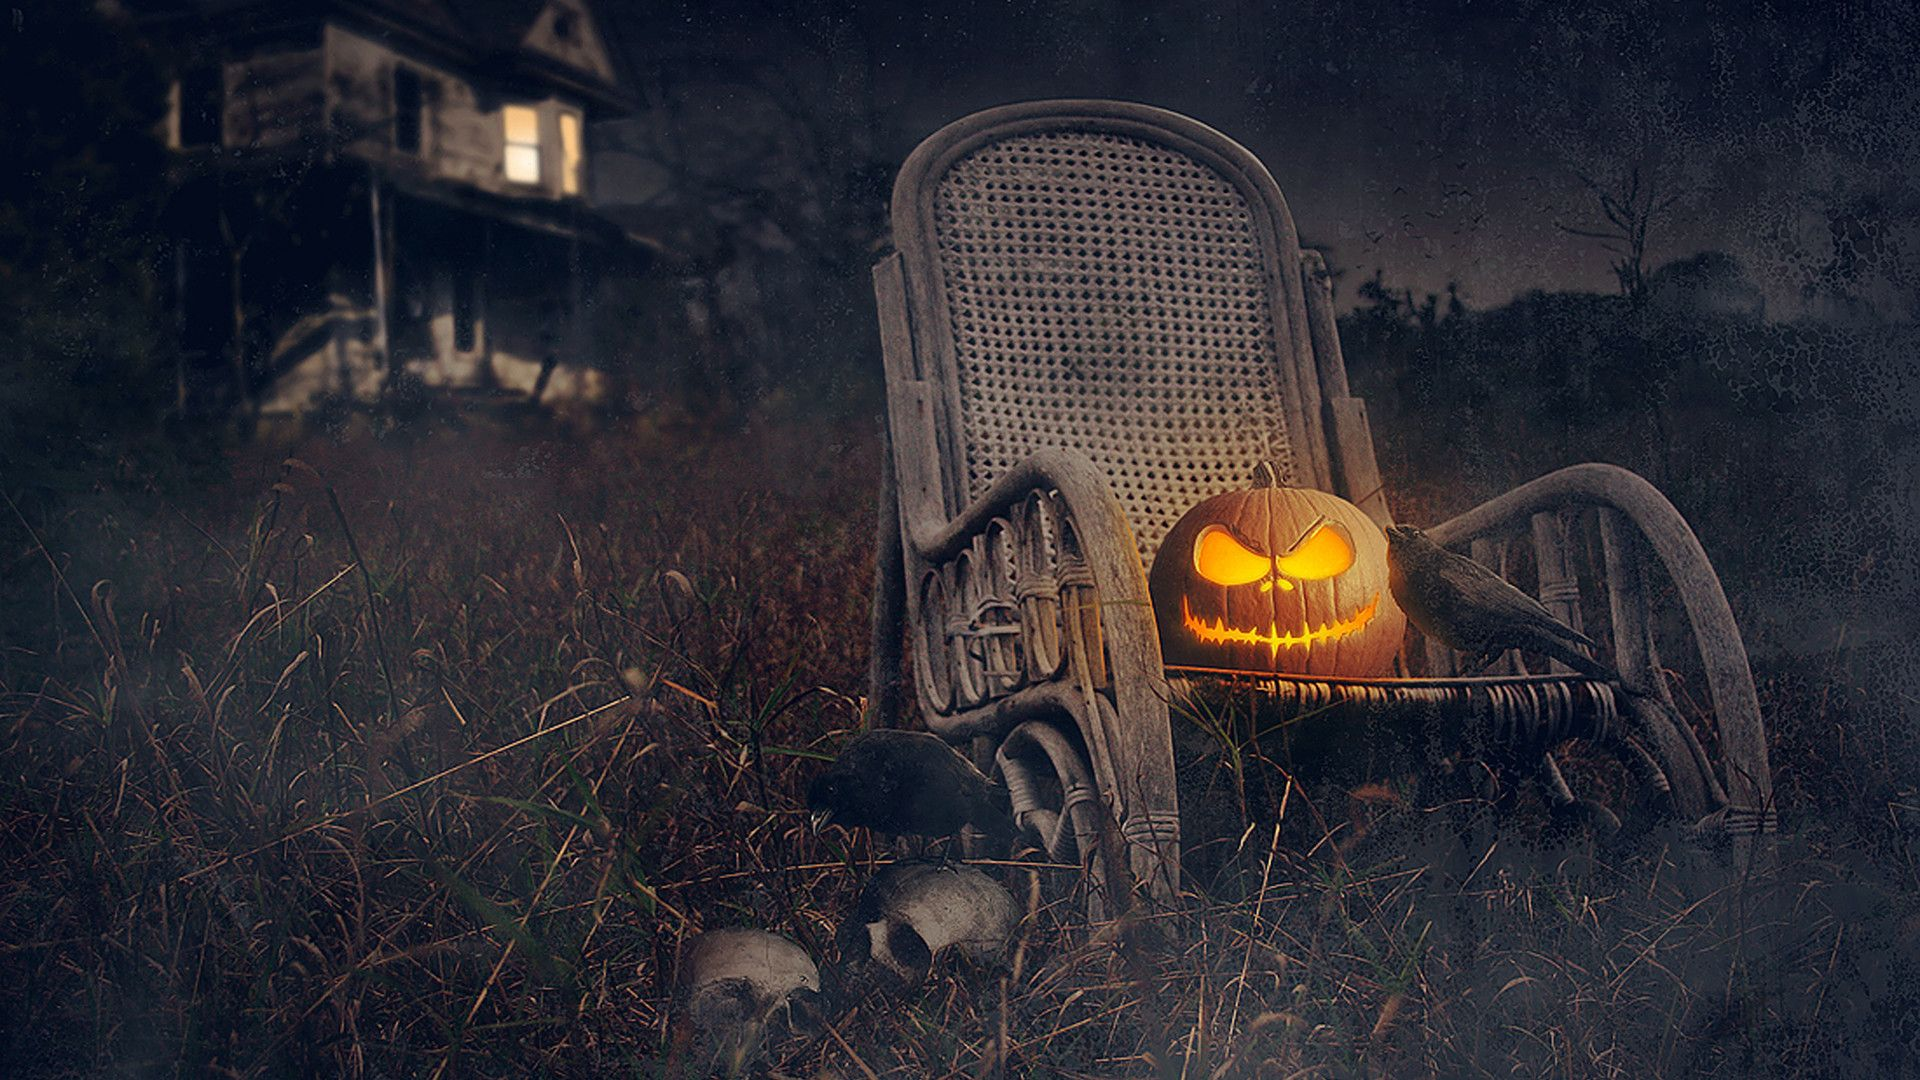 1920x1080 Scary Halloween Hd Picture Halloween Wallpaper Halloween Desktop Wallpaper Scary Halloween